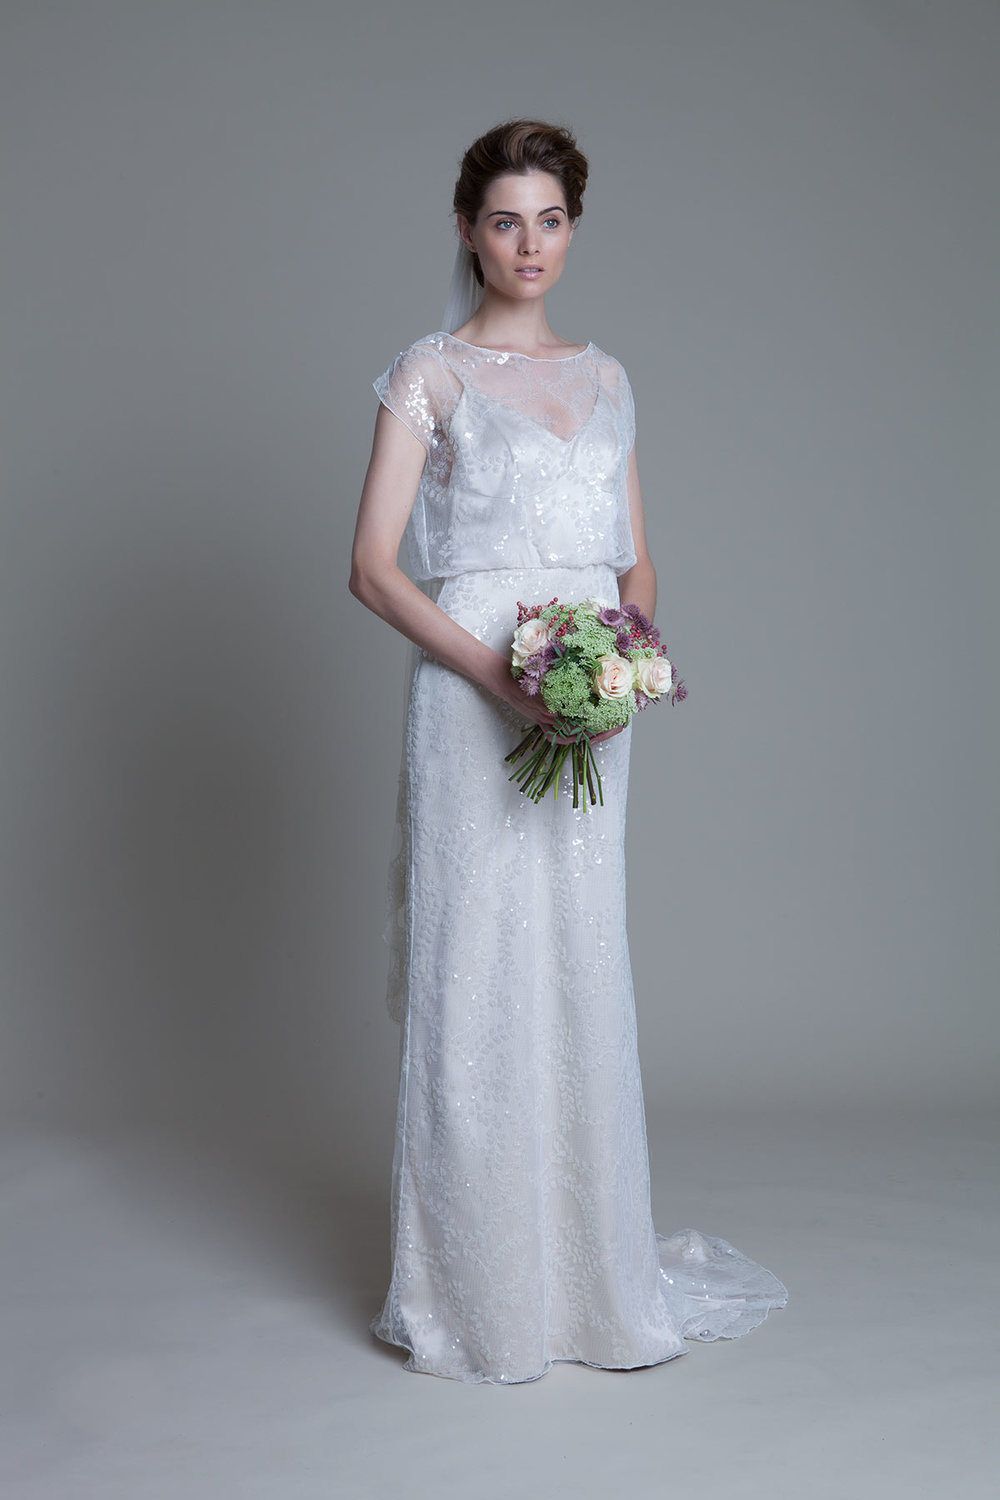 Lydia sequin ivory wedding dress by Halfpenny London